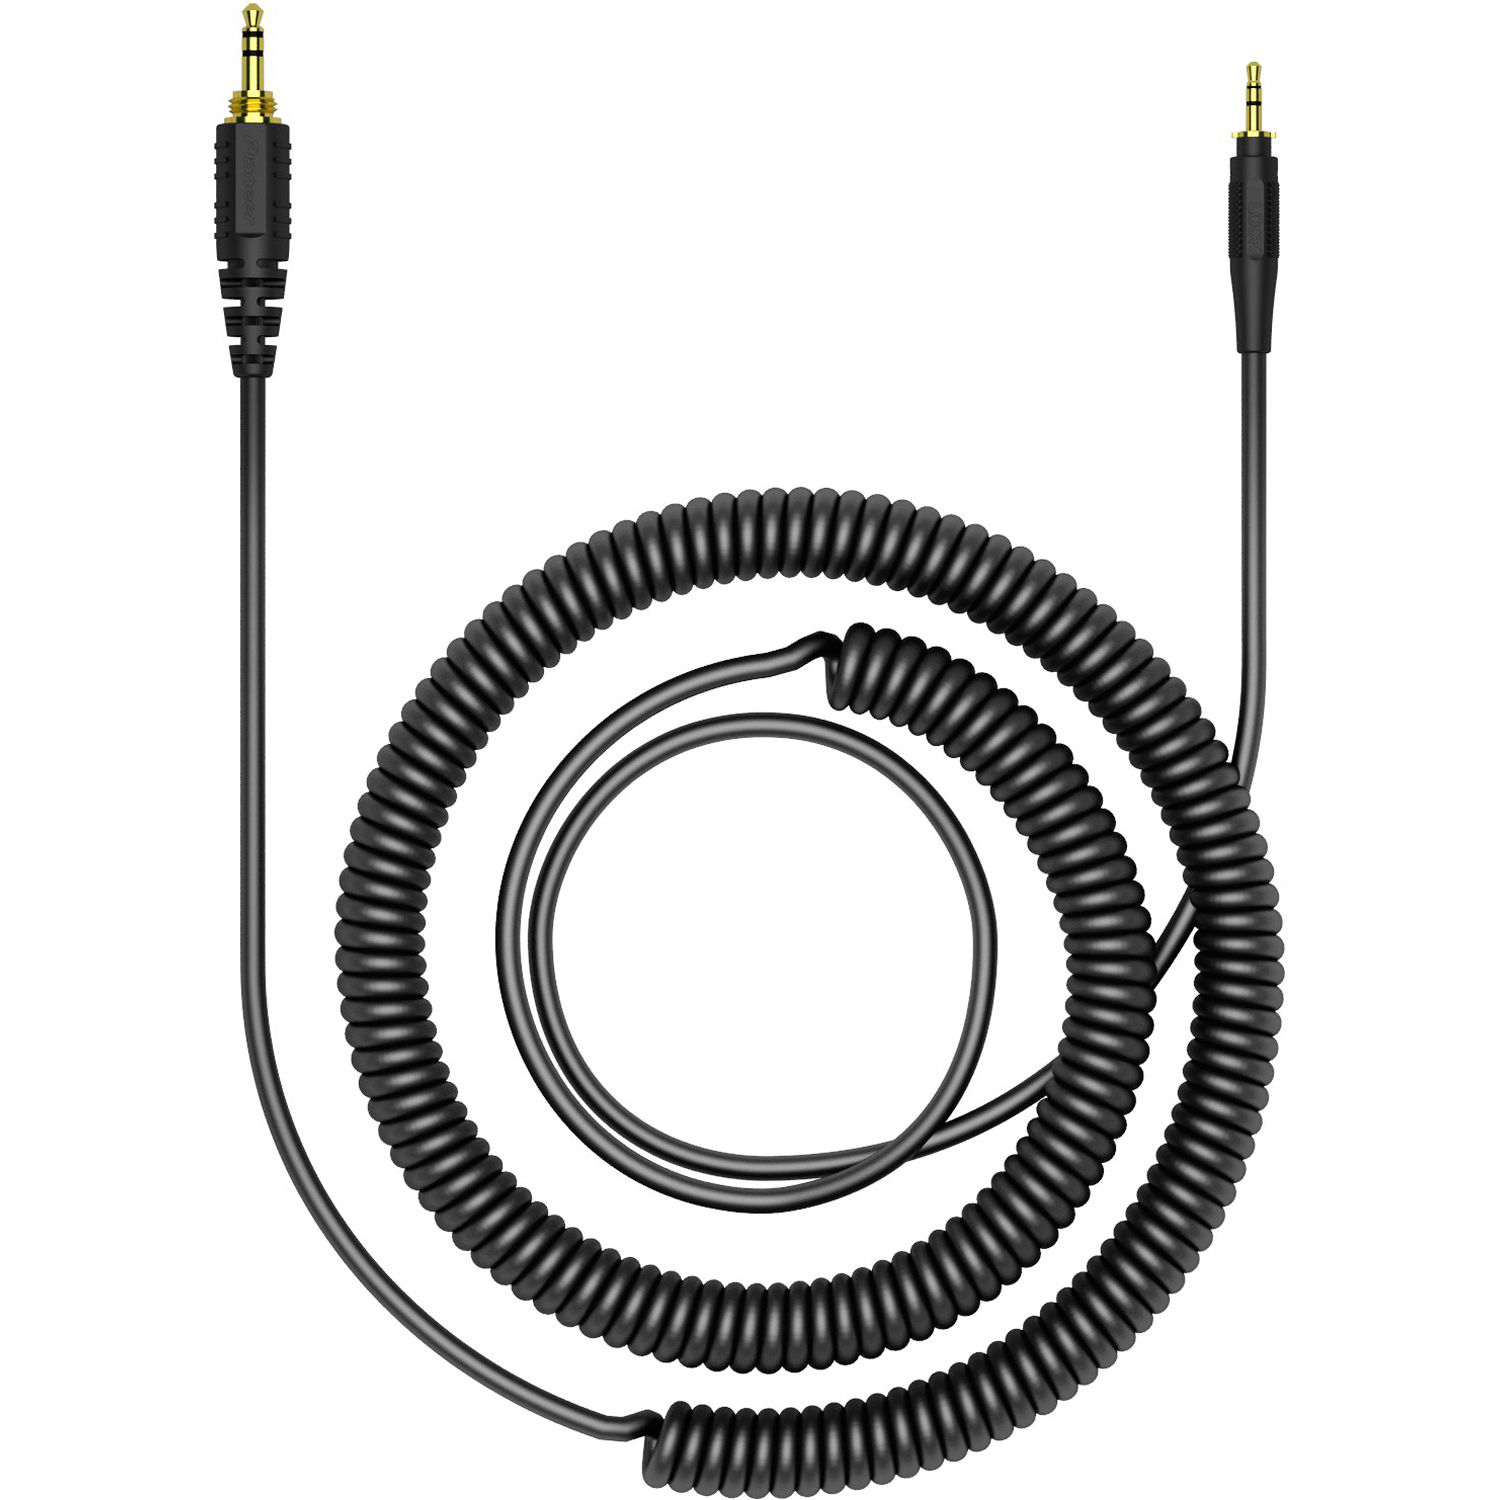 Pioneer Dj Coiled Cable For Hrm 7 Hrm 6 Hrm 5 Hc Ca B Amp H